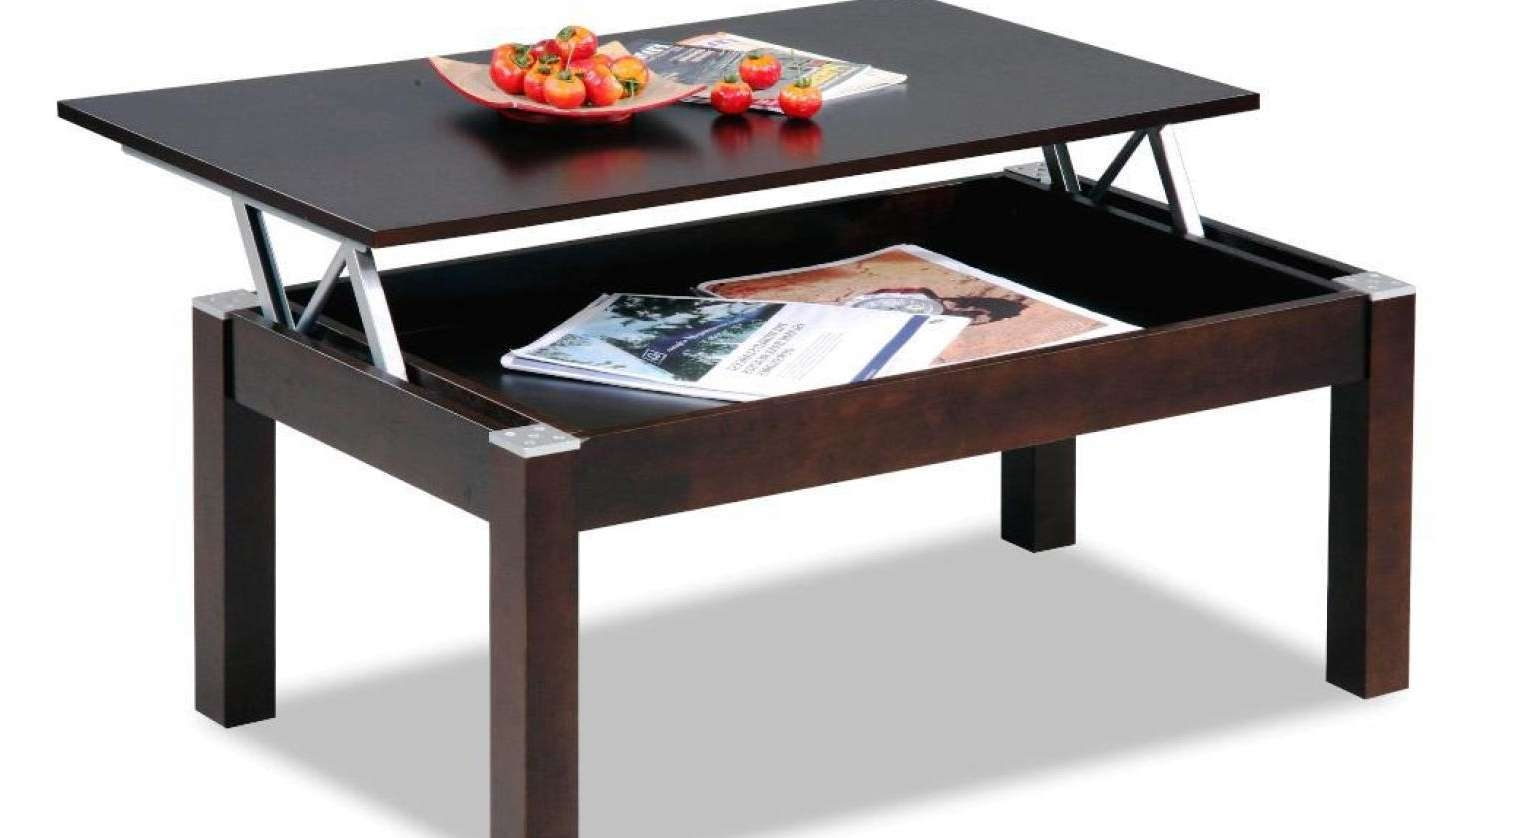 Most Current Waverly Lift Top Coffee Tables Intended For Table : Breathtaking Lift Top Coffee Table Black Beautiful Waverly (View 13 of 20)